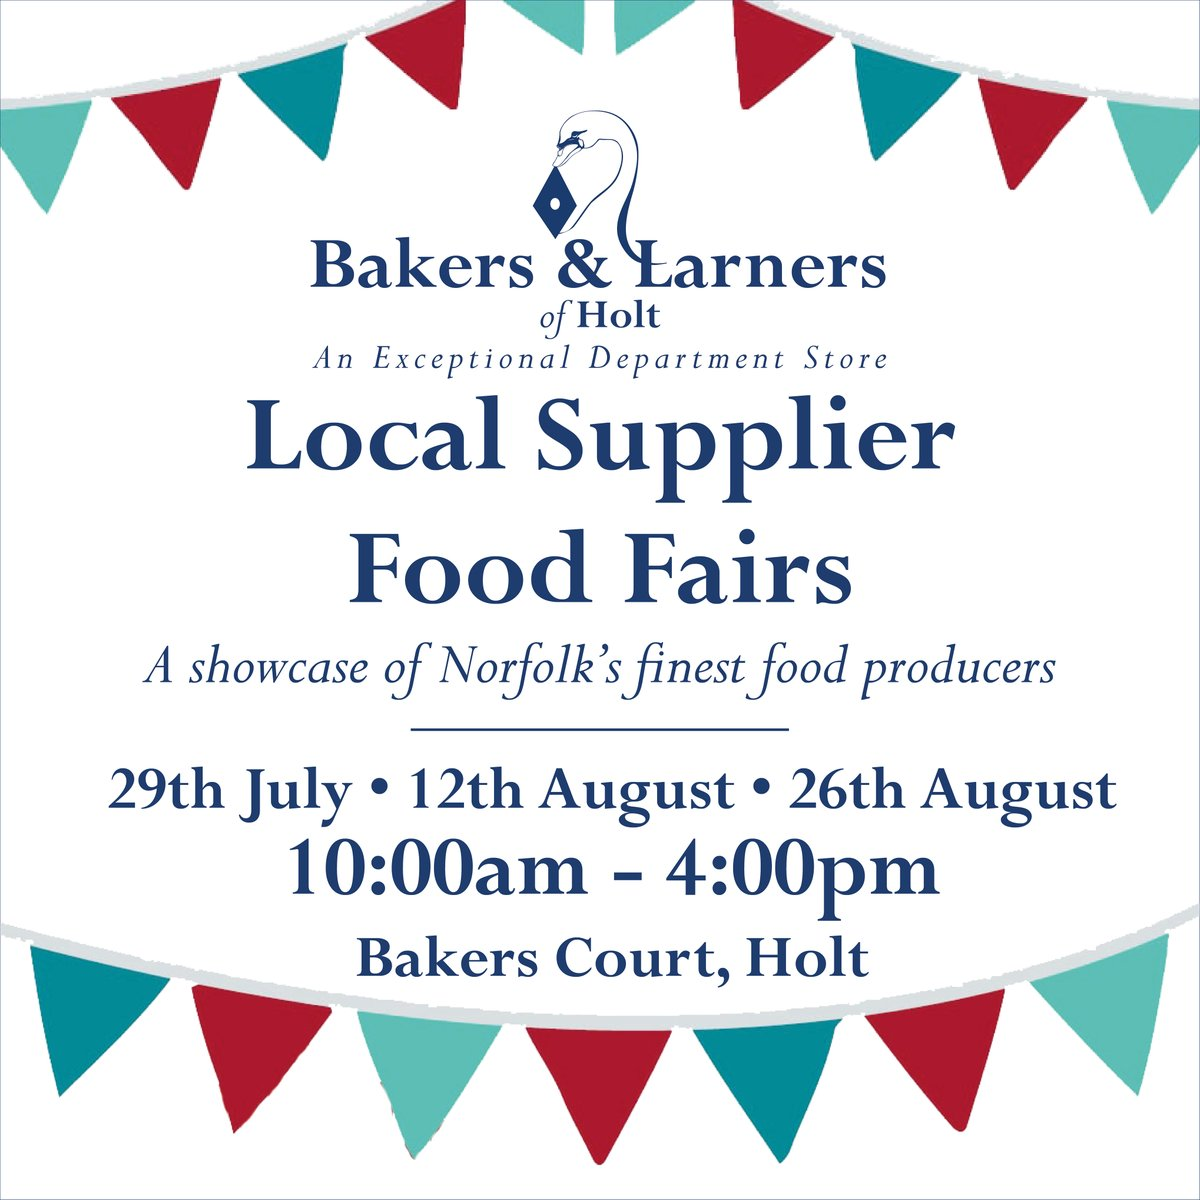 Bakers & Larners Sunday Summer Openings & Local Supplier Food Fairs